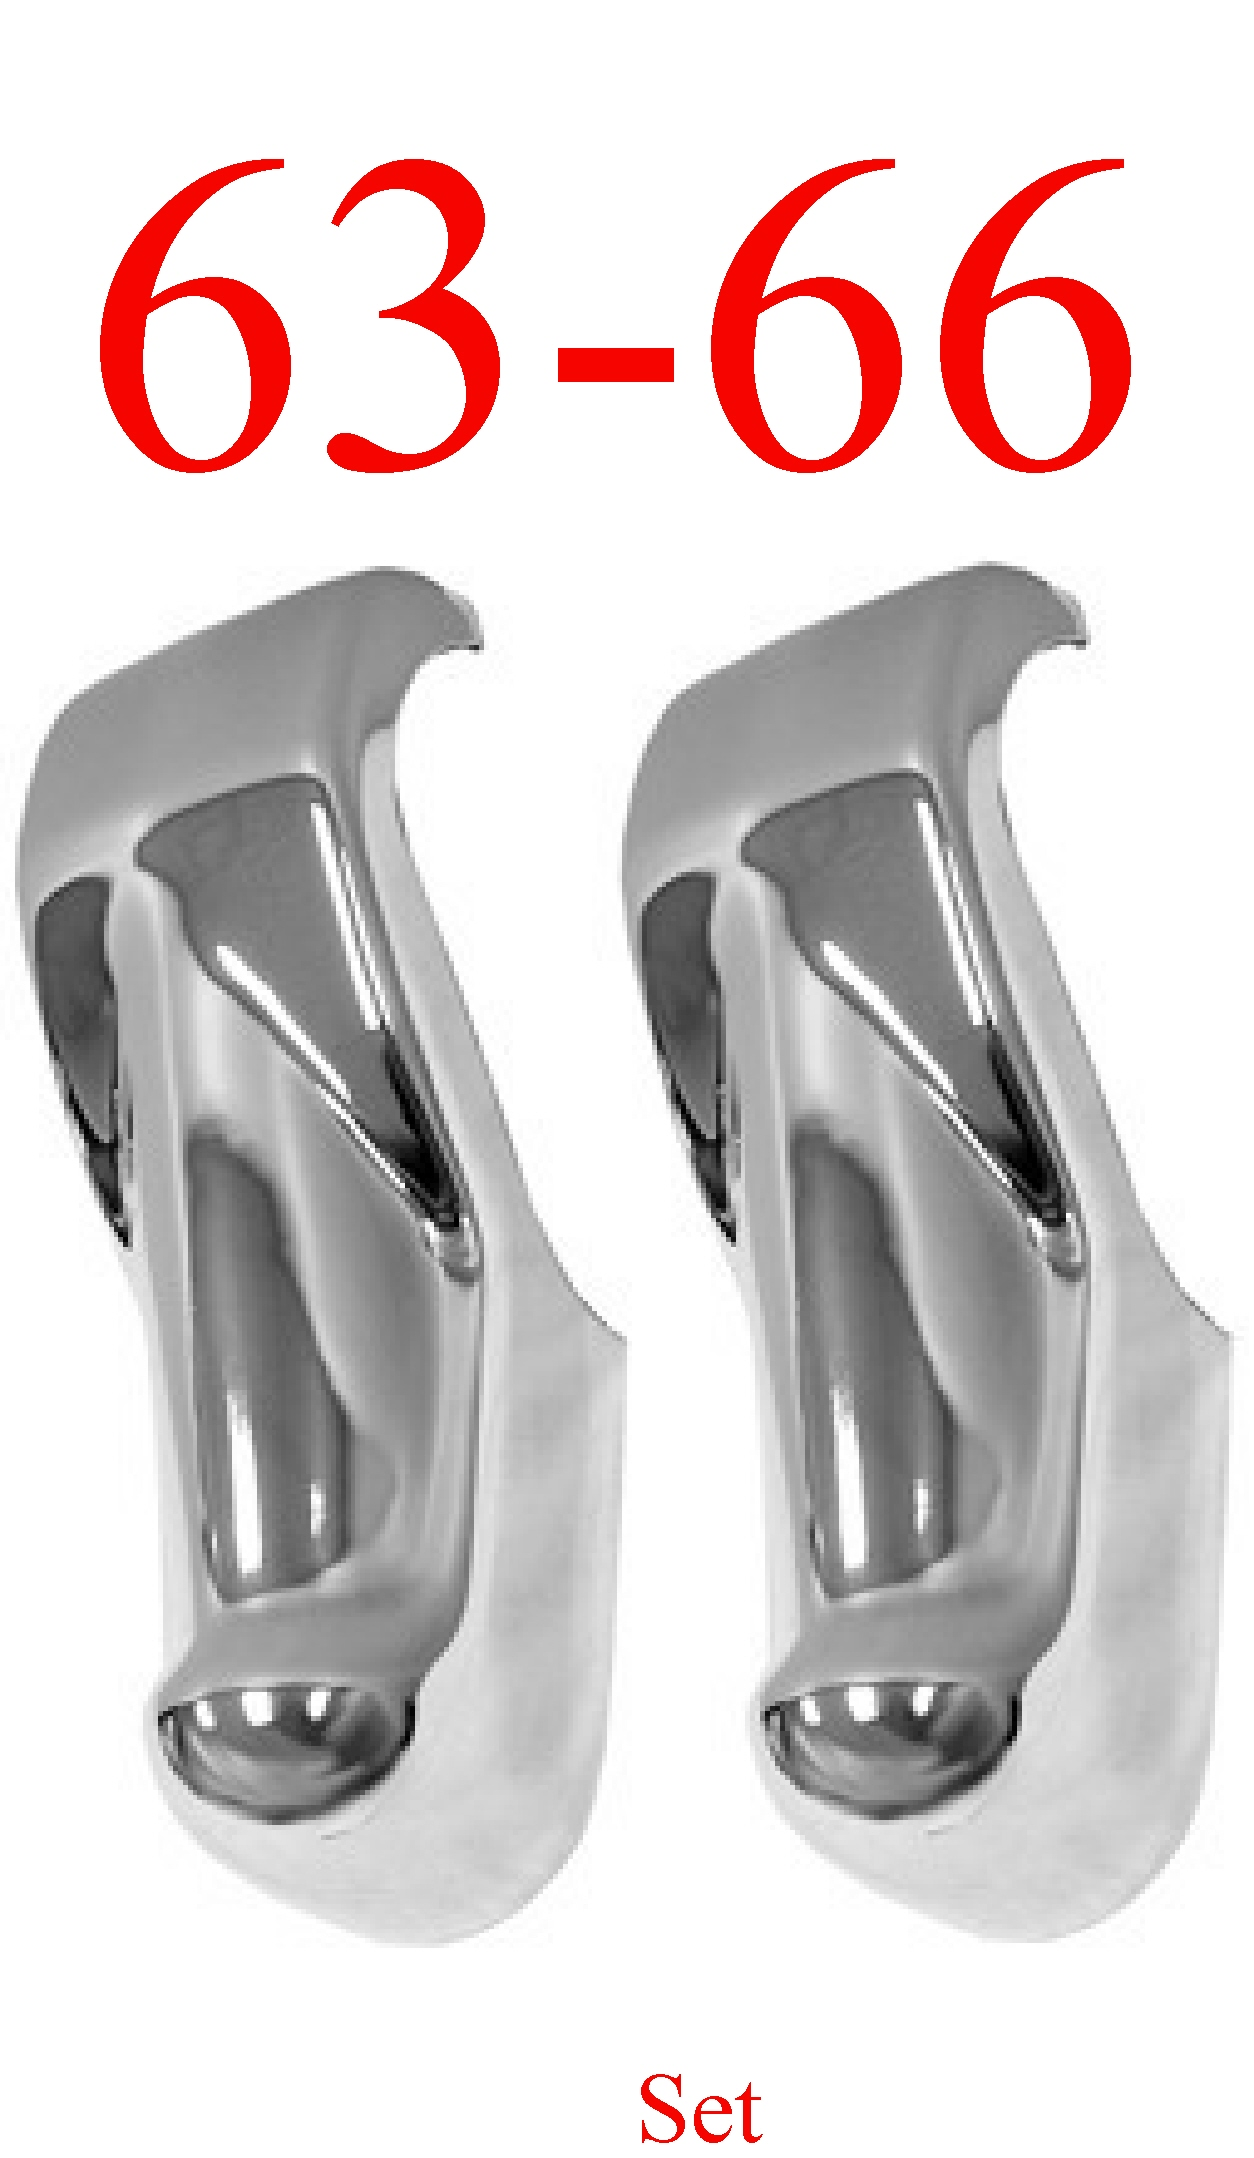 63-66 Chevy GMC Bumper Guard Pair, Chrome